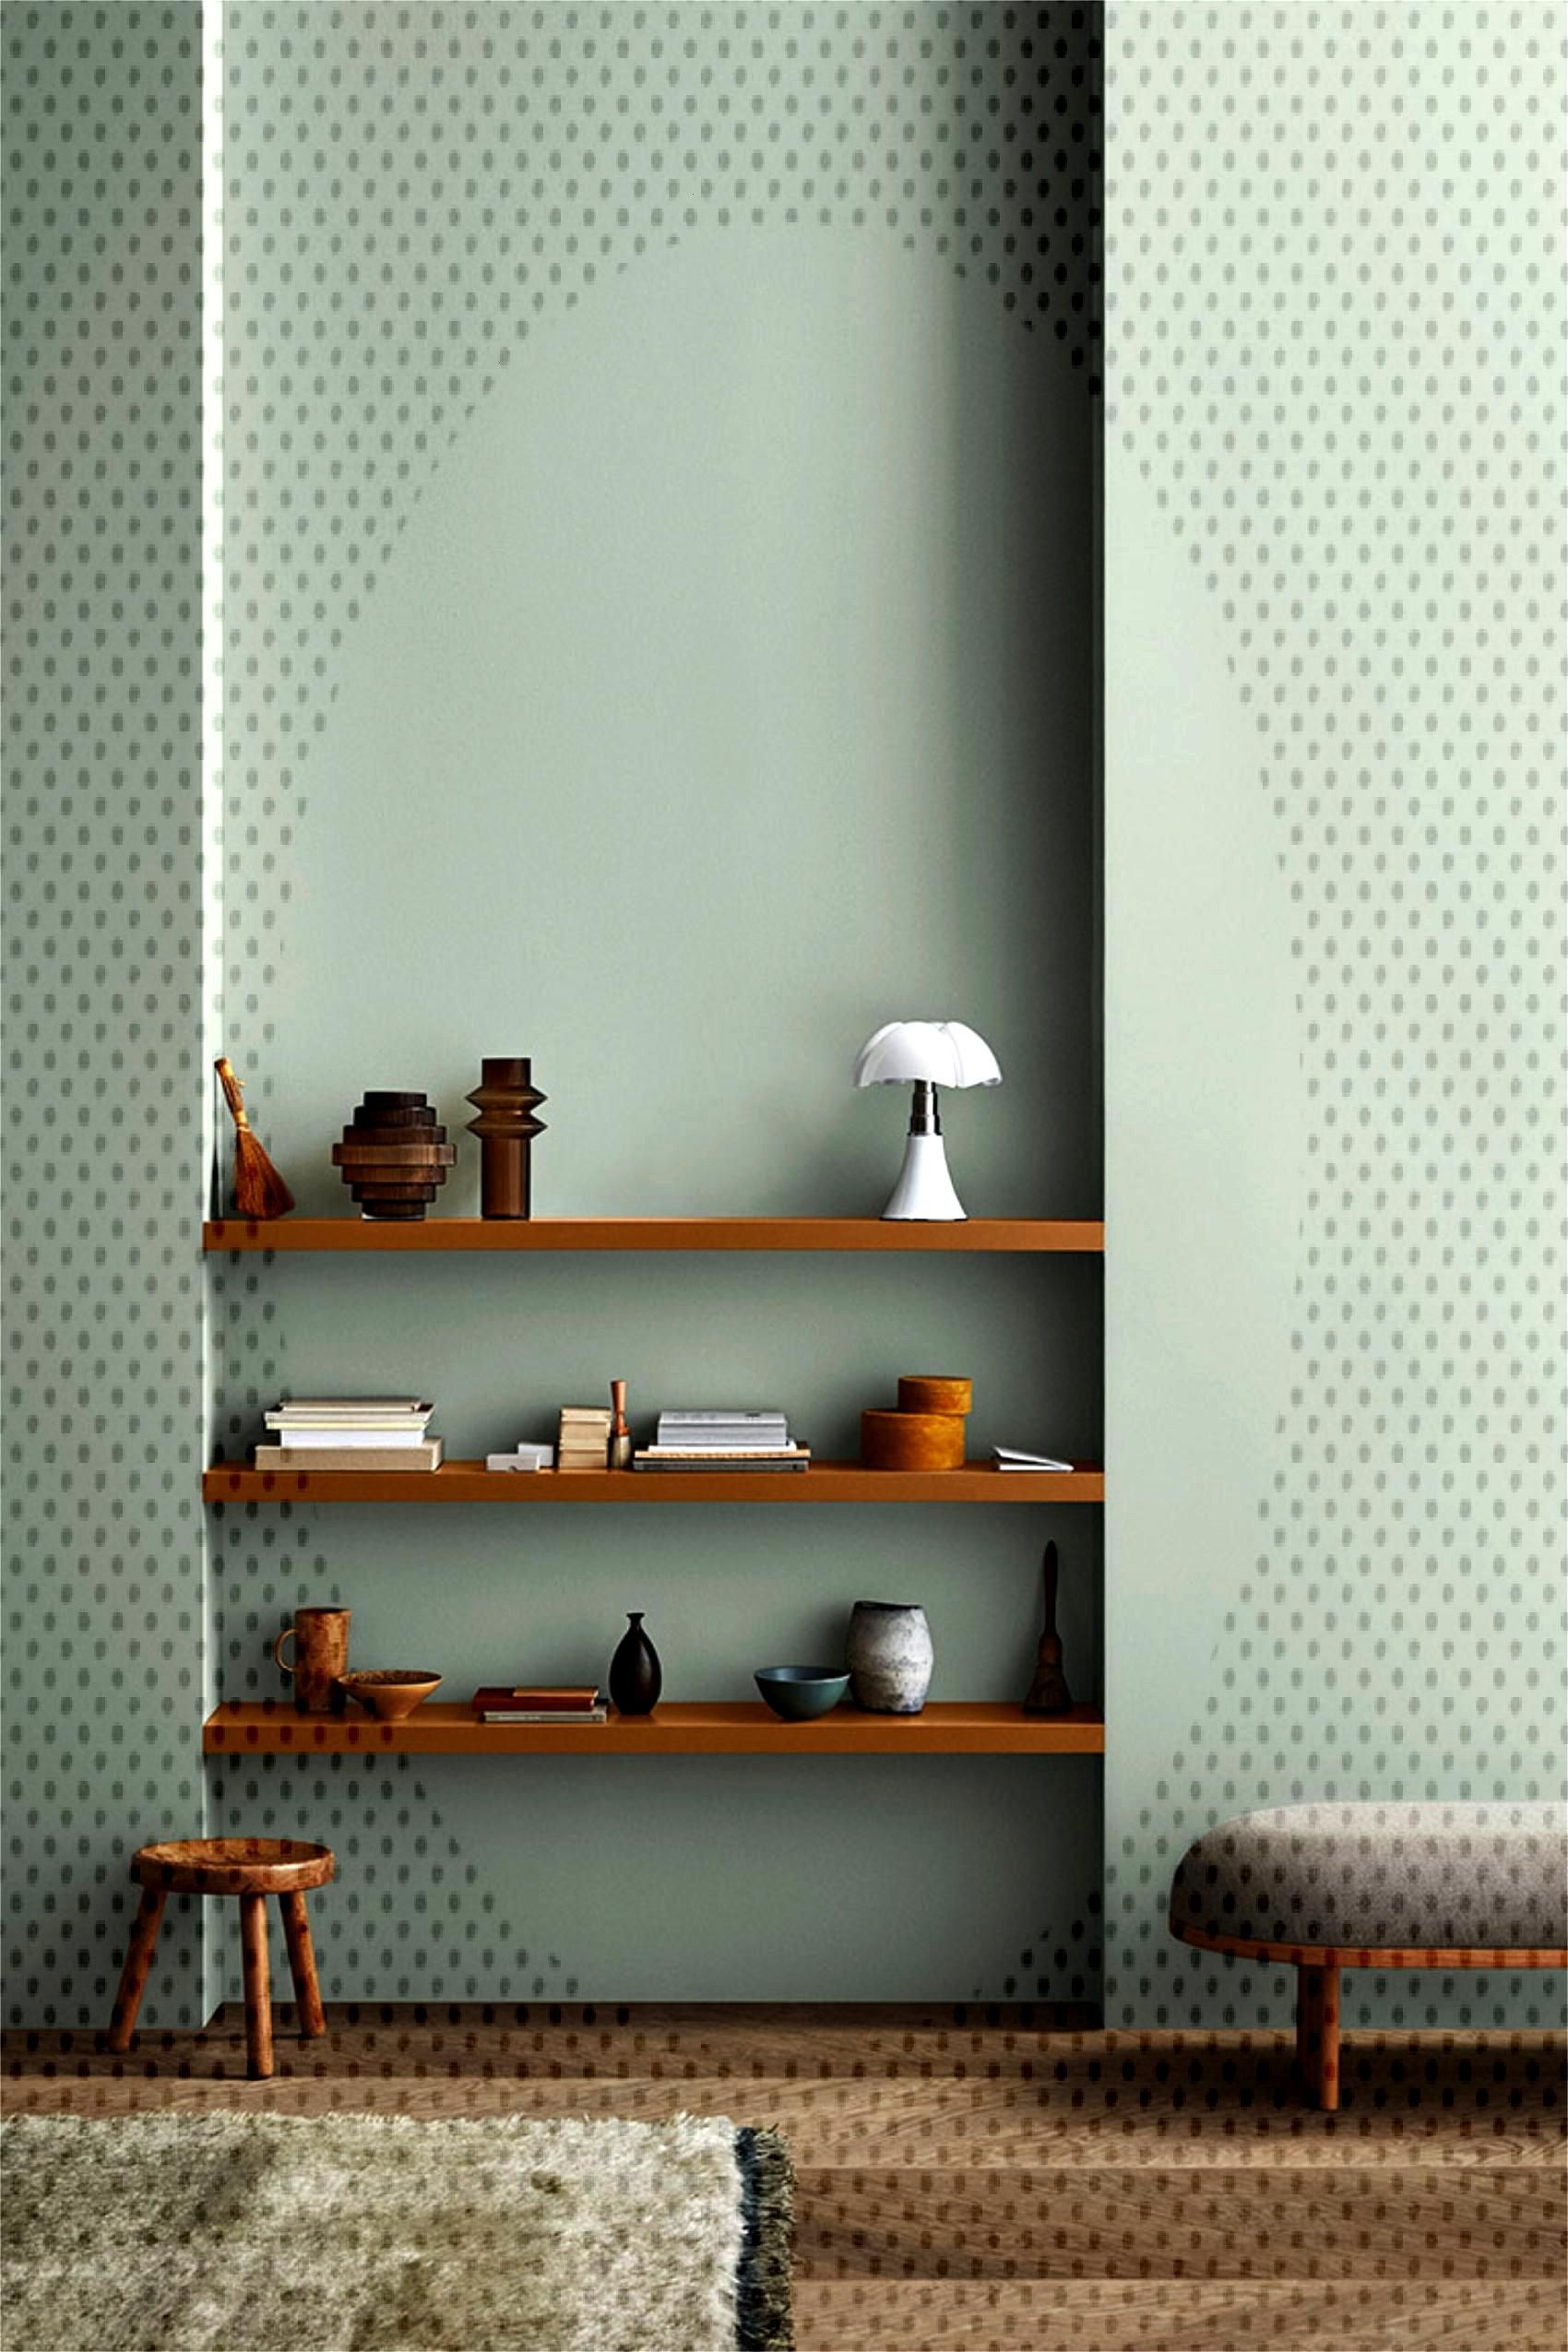 2020 interior colors trends according to Jotun Lady